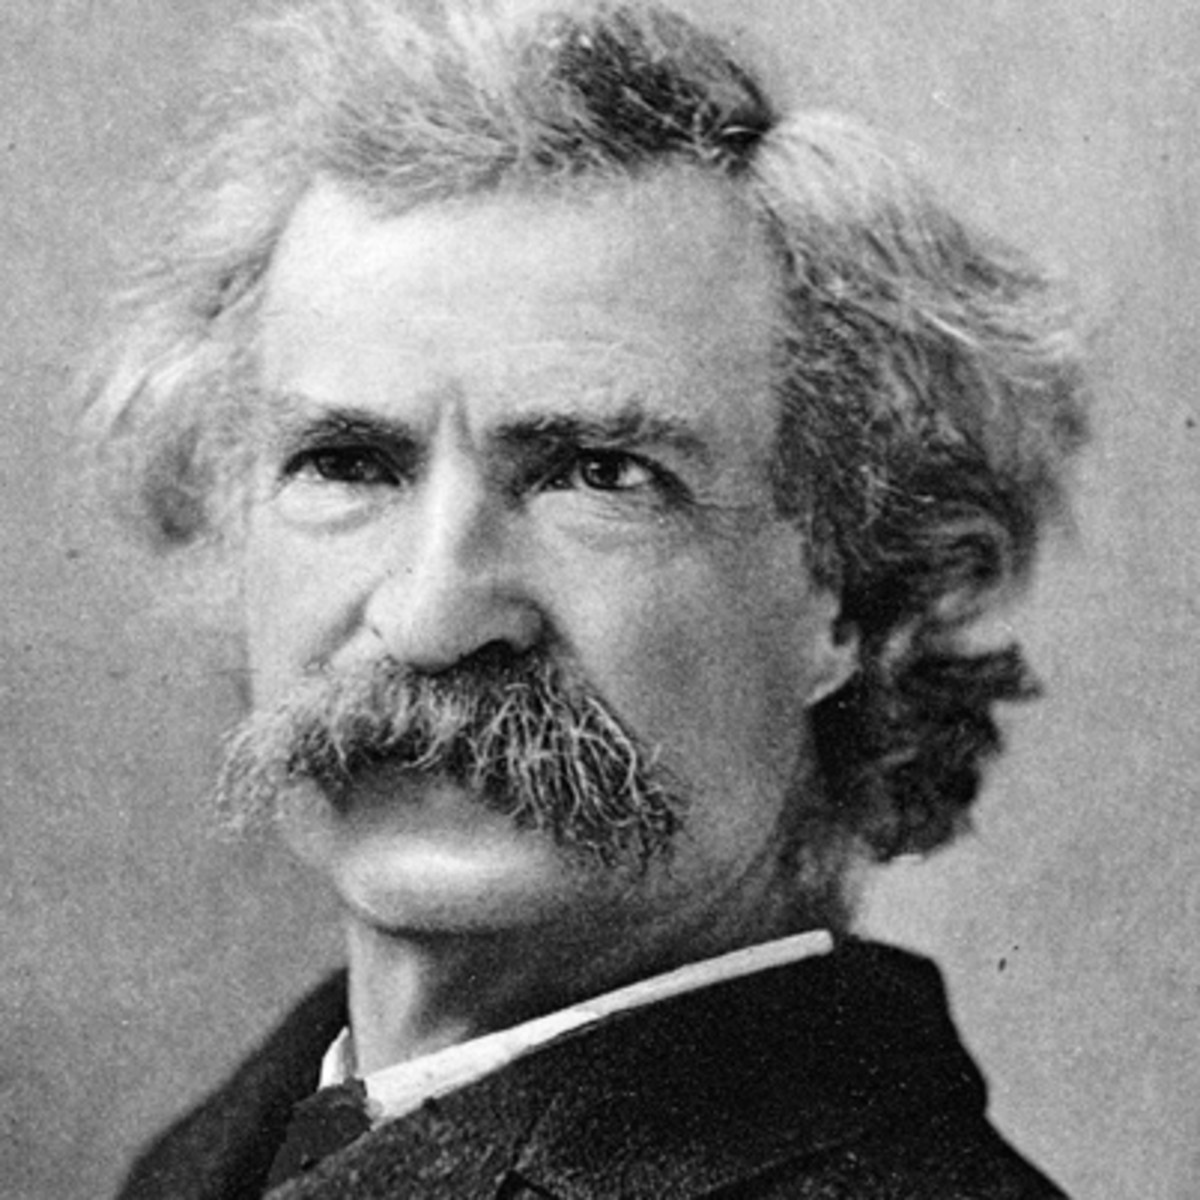 mark twain and novel info essay Mark twain, huckleberry finn, and race in postbellum america defenders of huckleberry finn respond that the book, in fact how does t s perry describe huckleberry finn in his 1885 essay why does he praise the novel.